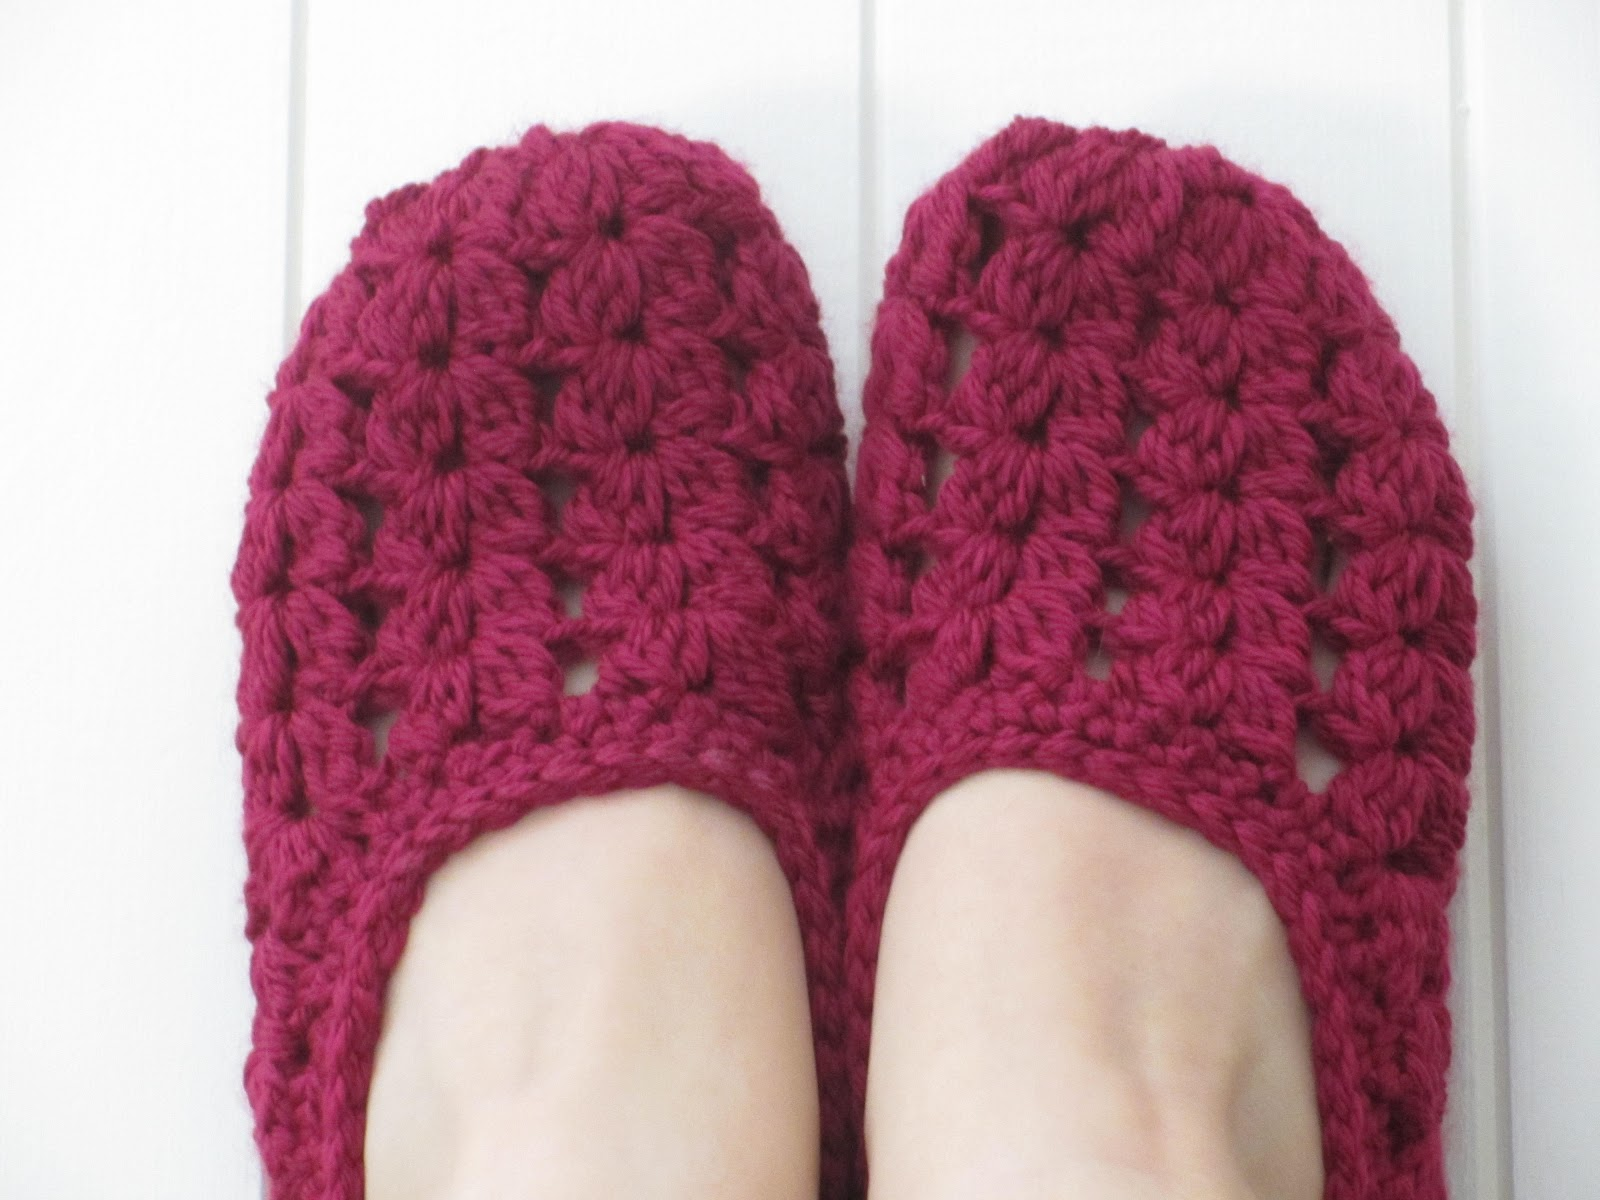 Free Crochet Patterns Booties For Adults : Jays Boutique Blog: FREE PATTERN: Seaspray Slippers (plus ...